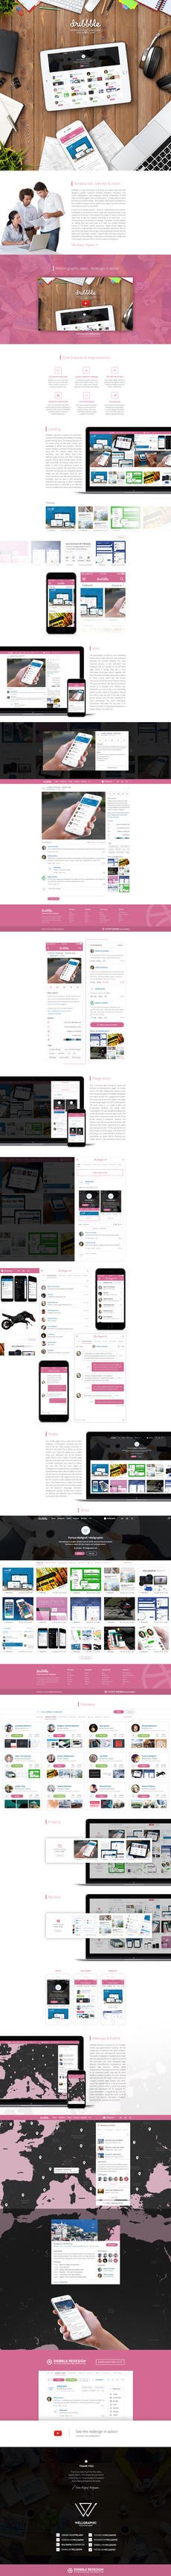 Dribbble Redesign by wellgraphic